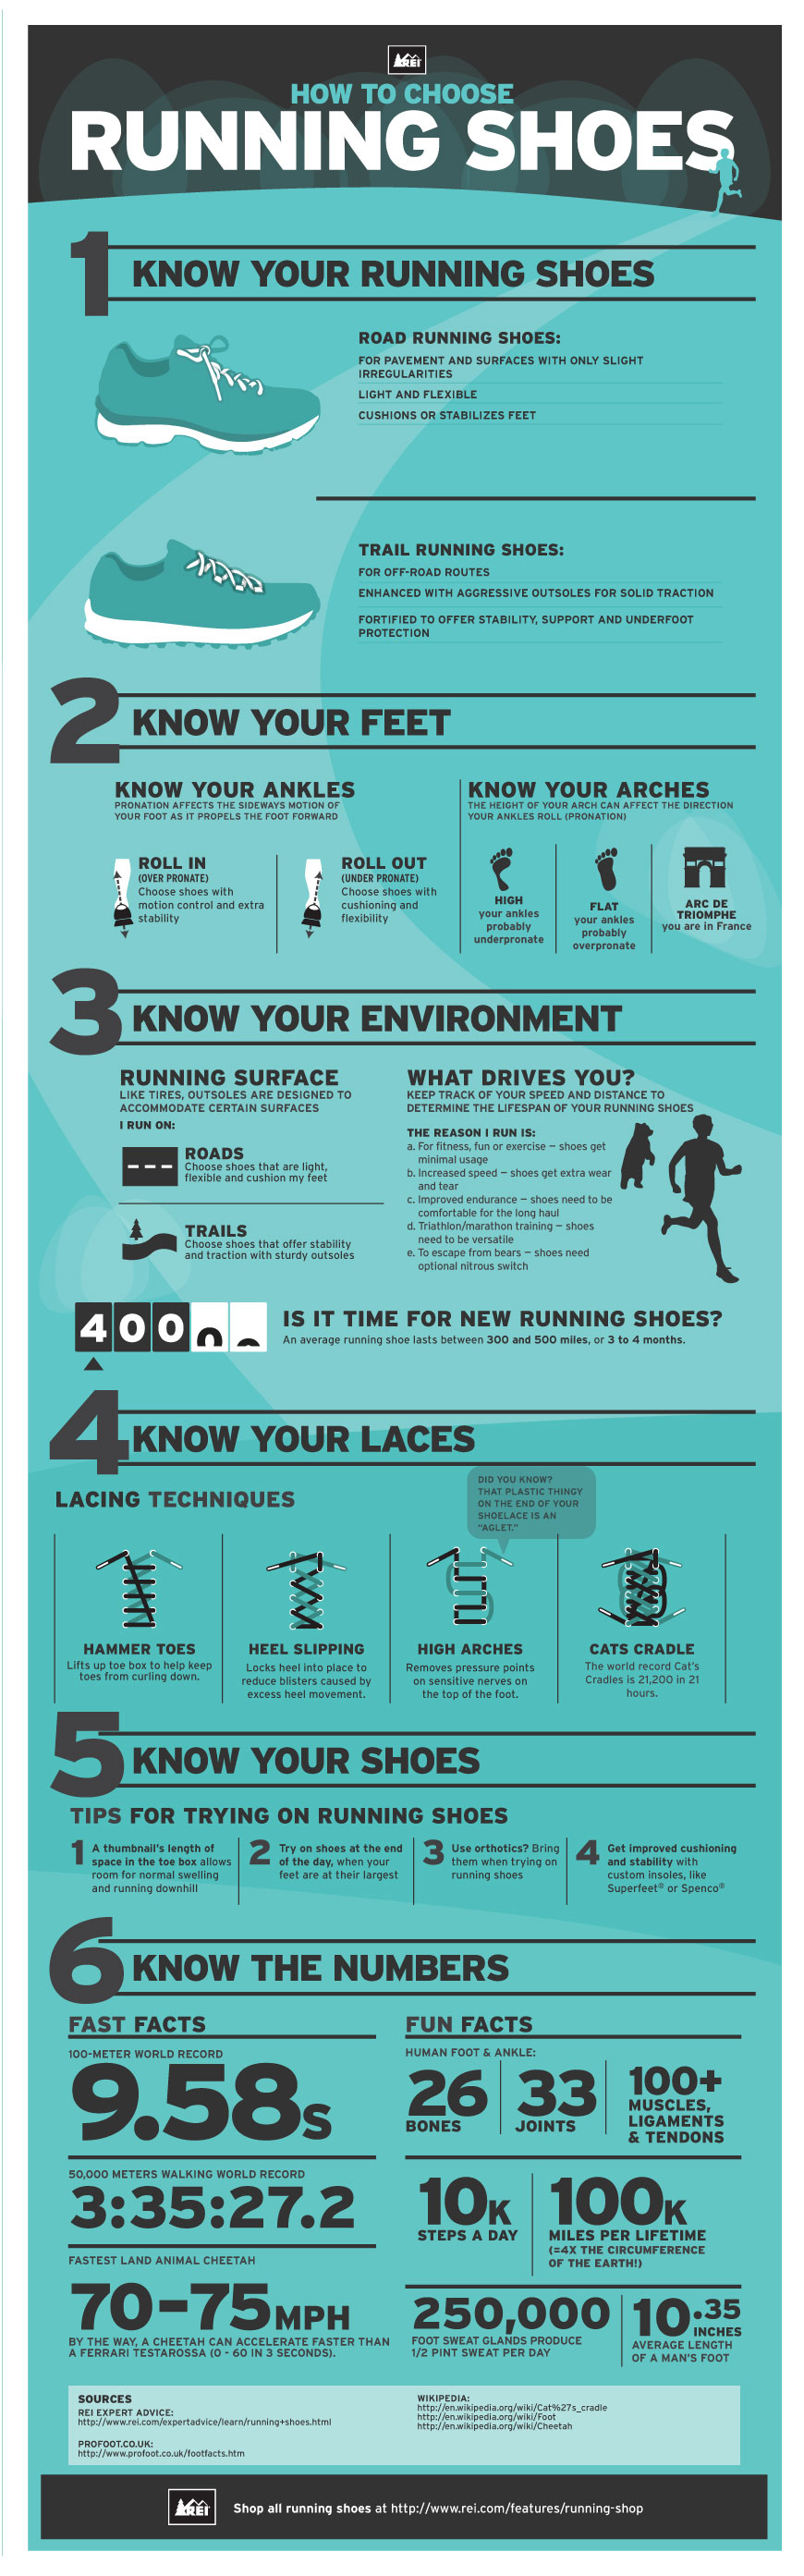 About Running Shoes